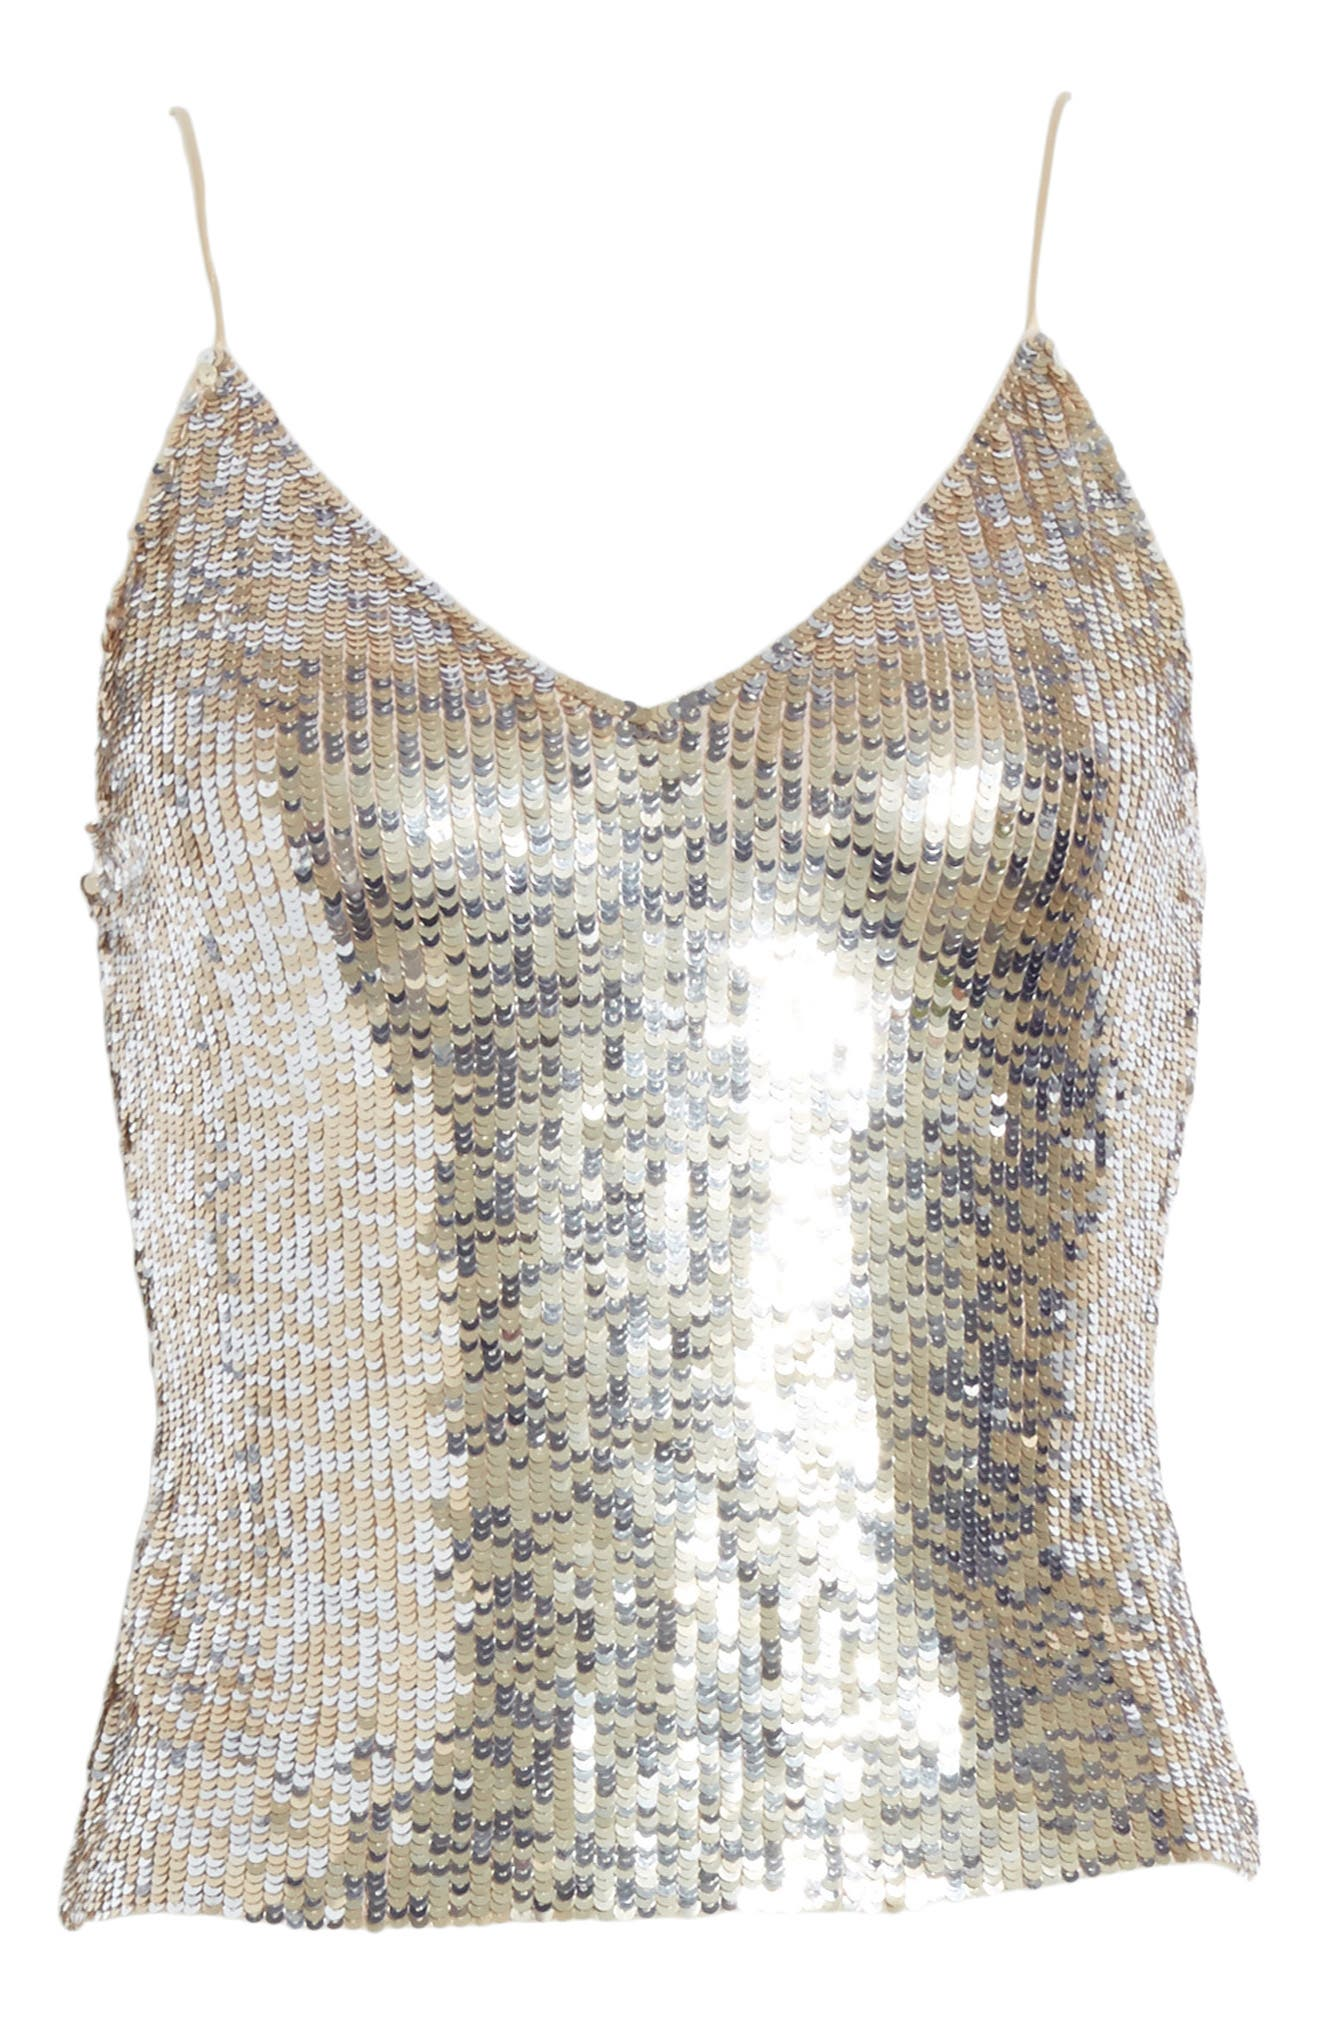 Delray Sequin Embellished Camisole,                             Alternate thumbnail 6, color,                             048